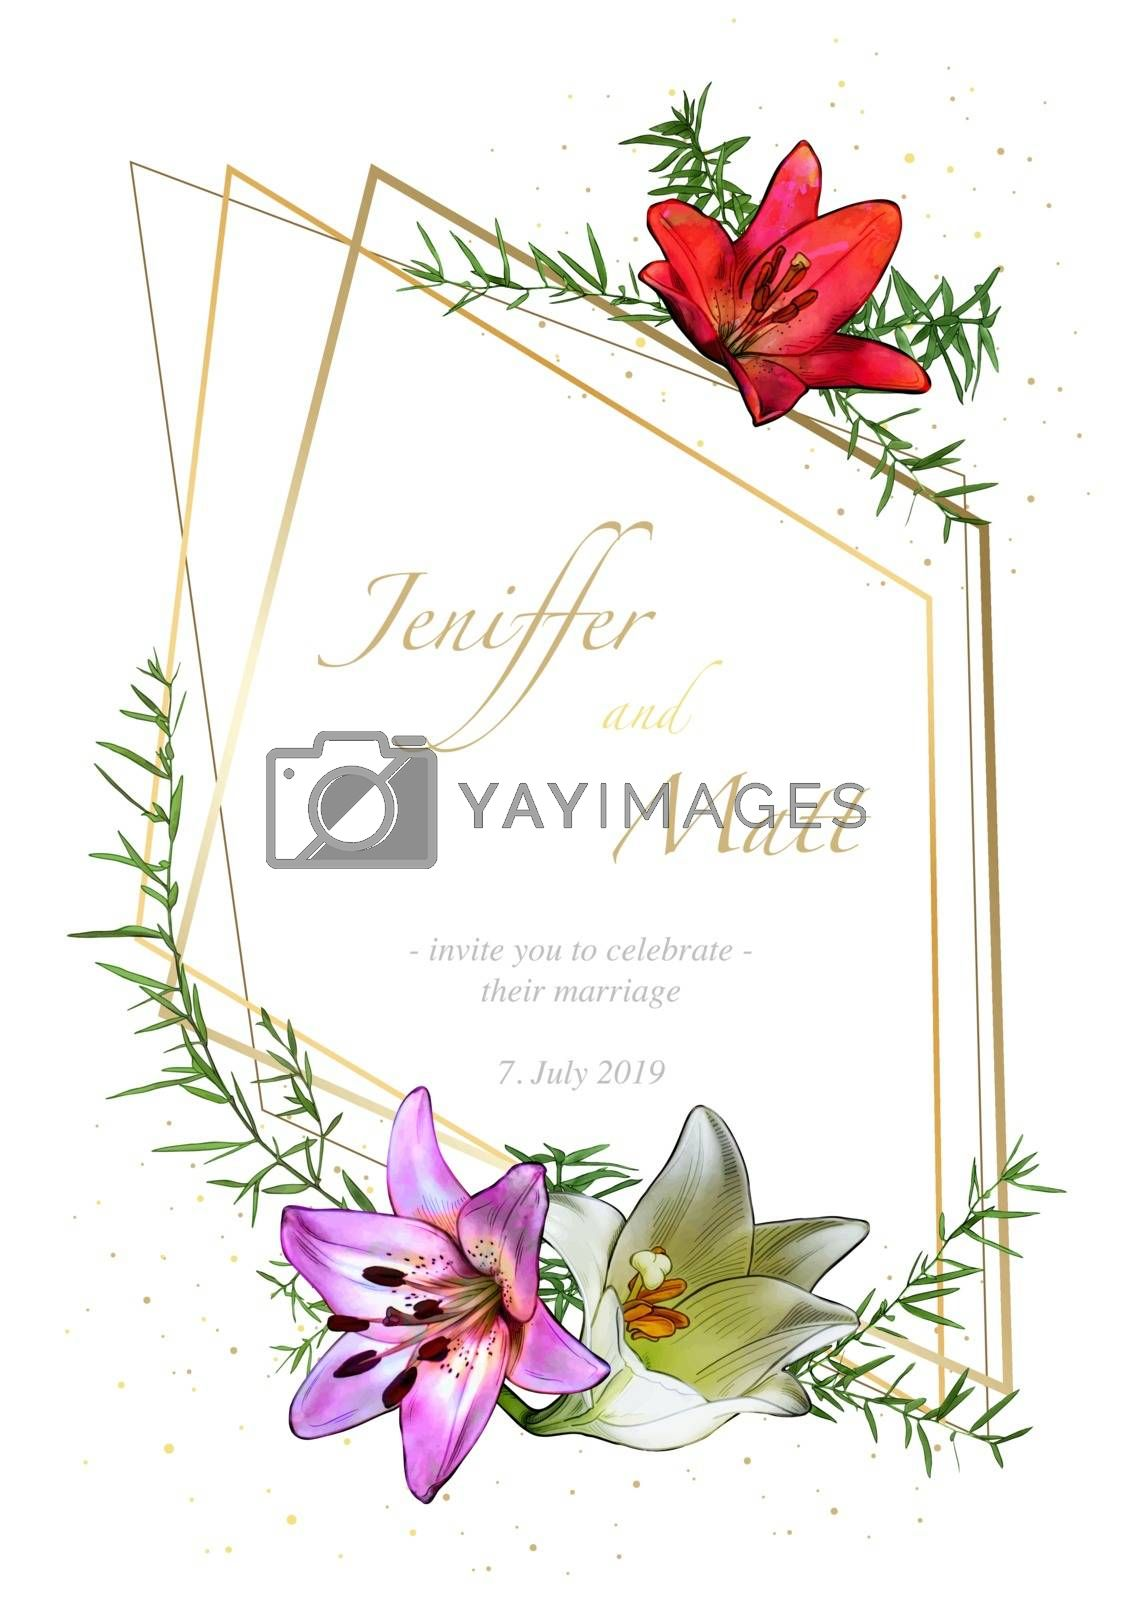 Floral Wedding Invitation Card with Watercolor Flowers with Leafs and Golden Decoration - Colored Illustration, Vector Graphic